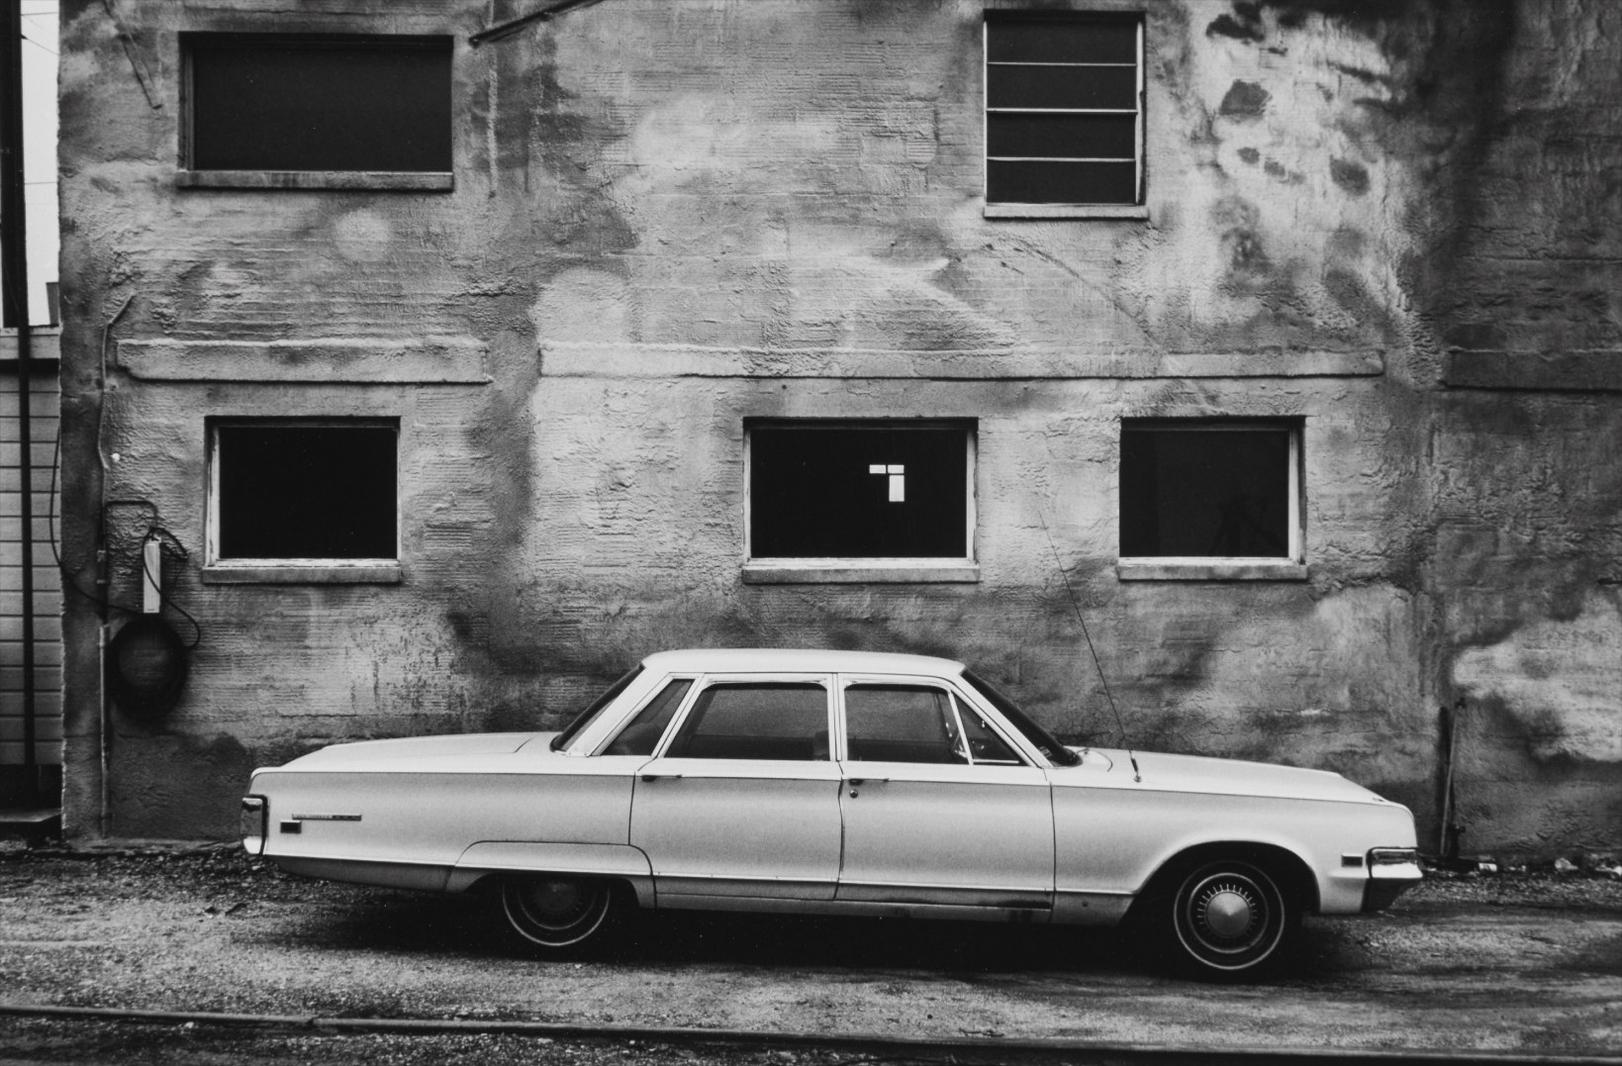 Lewis Baltz-Galveston (Prototype)-1973